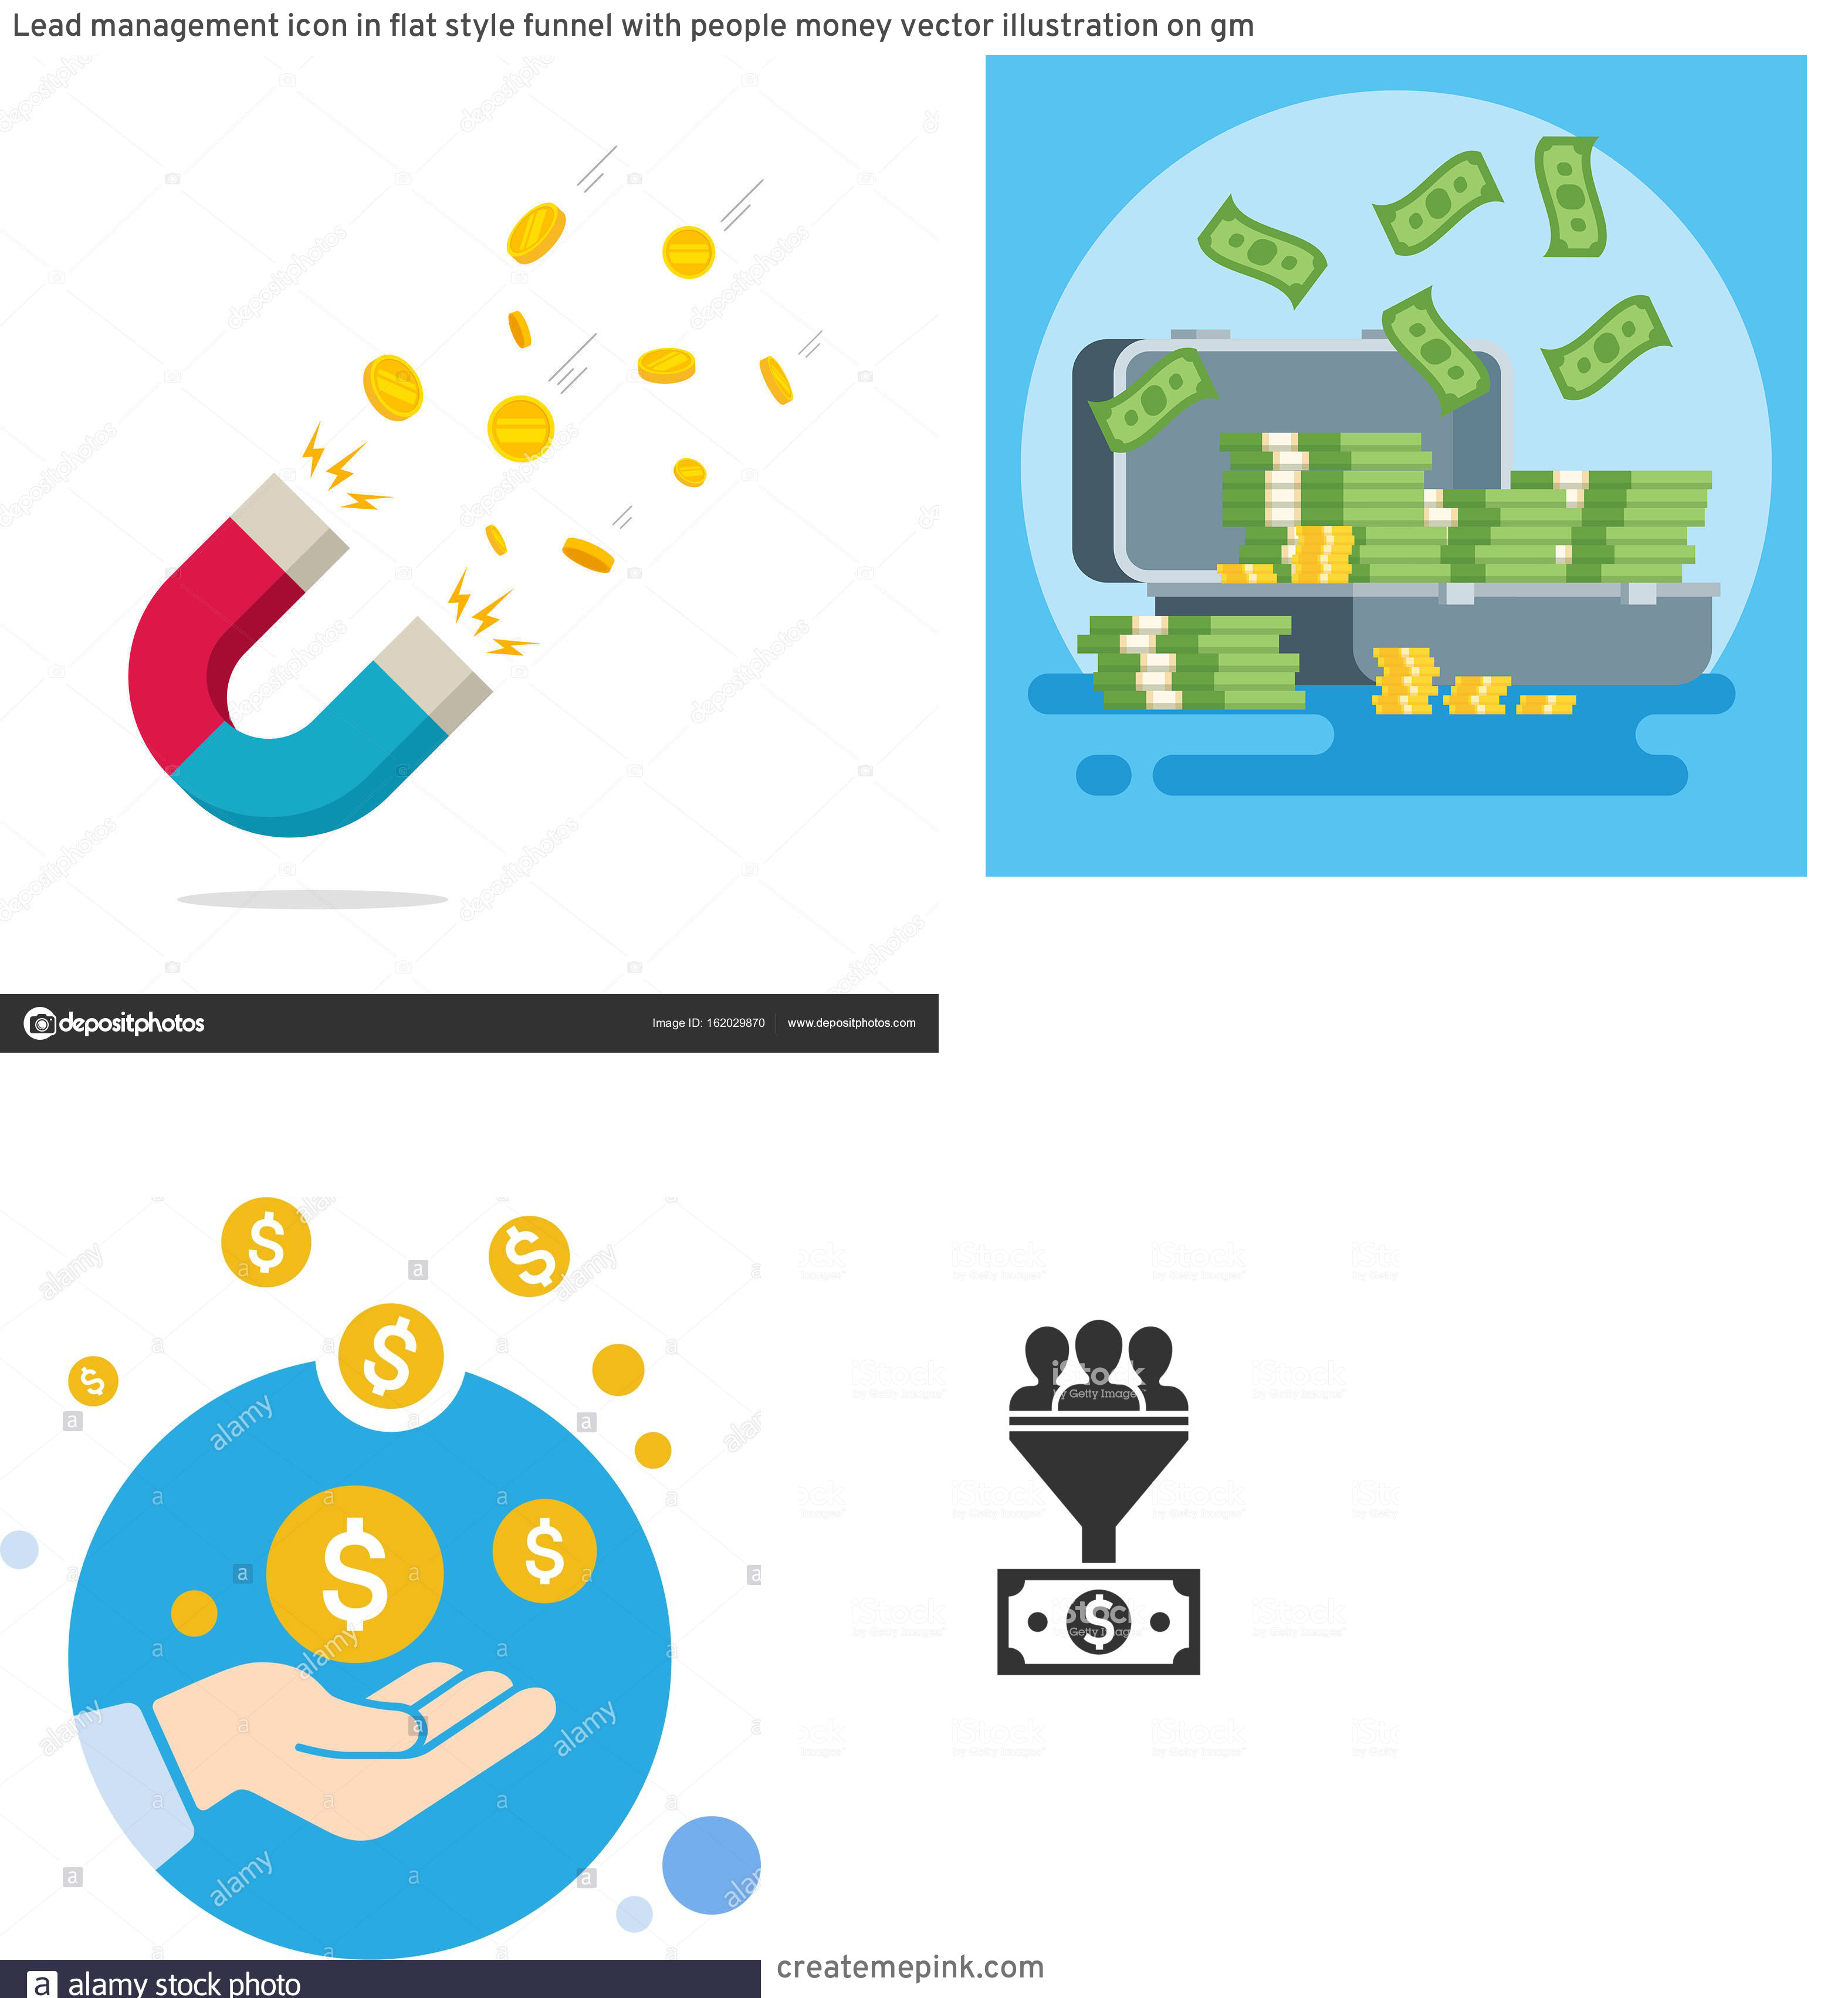 Money Vector Illustration: Lead Management Icon In Flat Style Funnel With People Money Vector Illustration On Gm